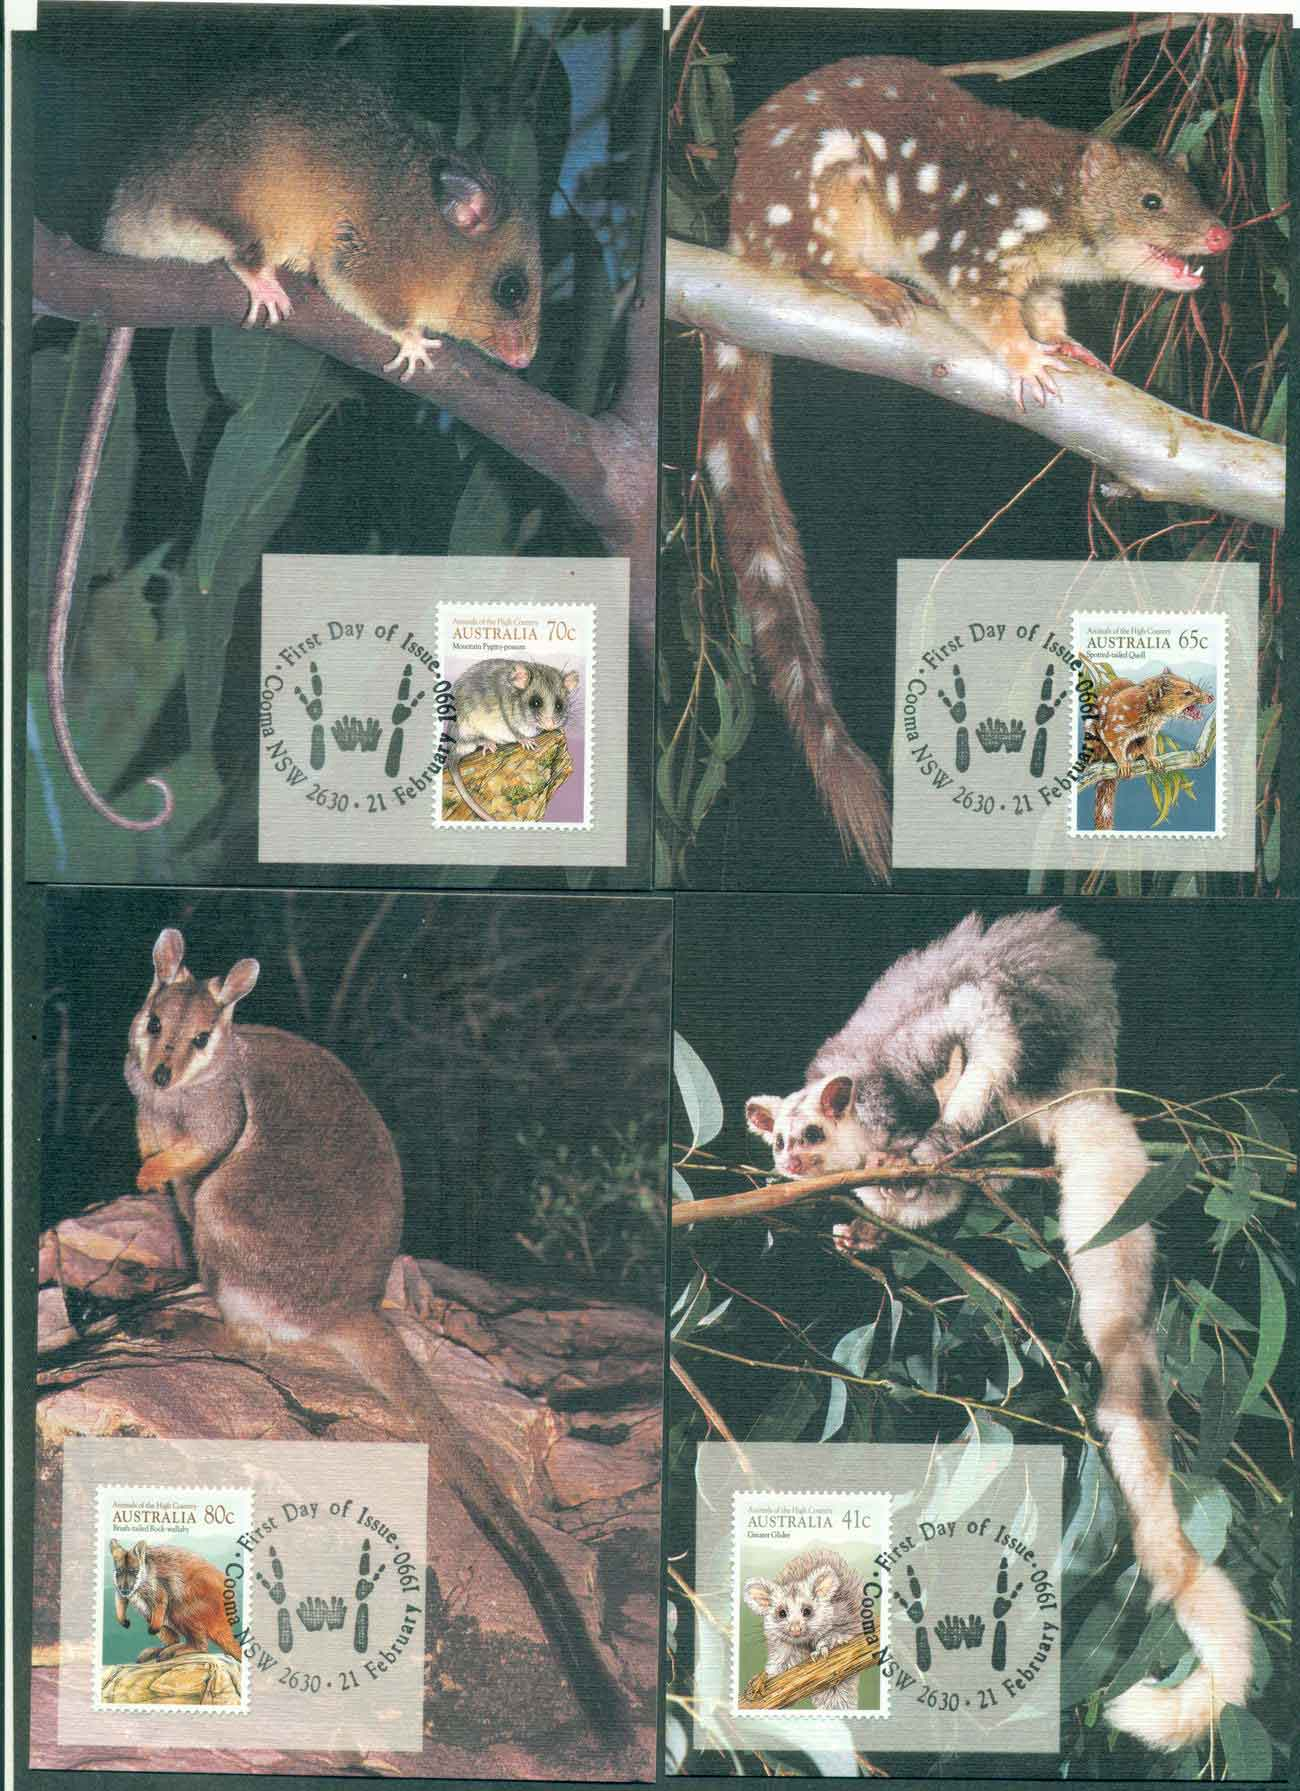 Australia 1990 Animals of the High Country Maximum Cards (4) lot49211